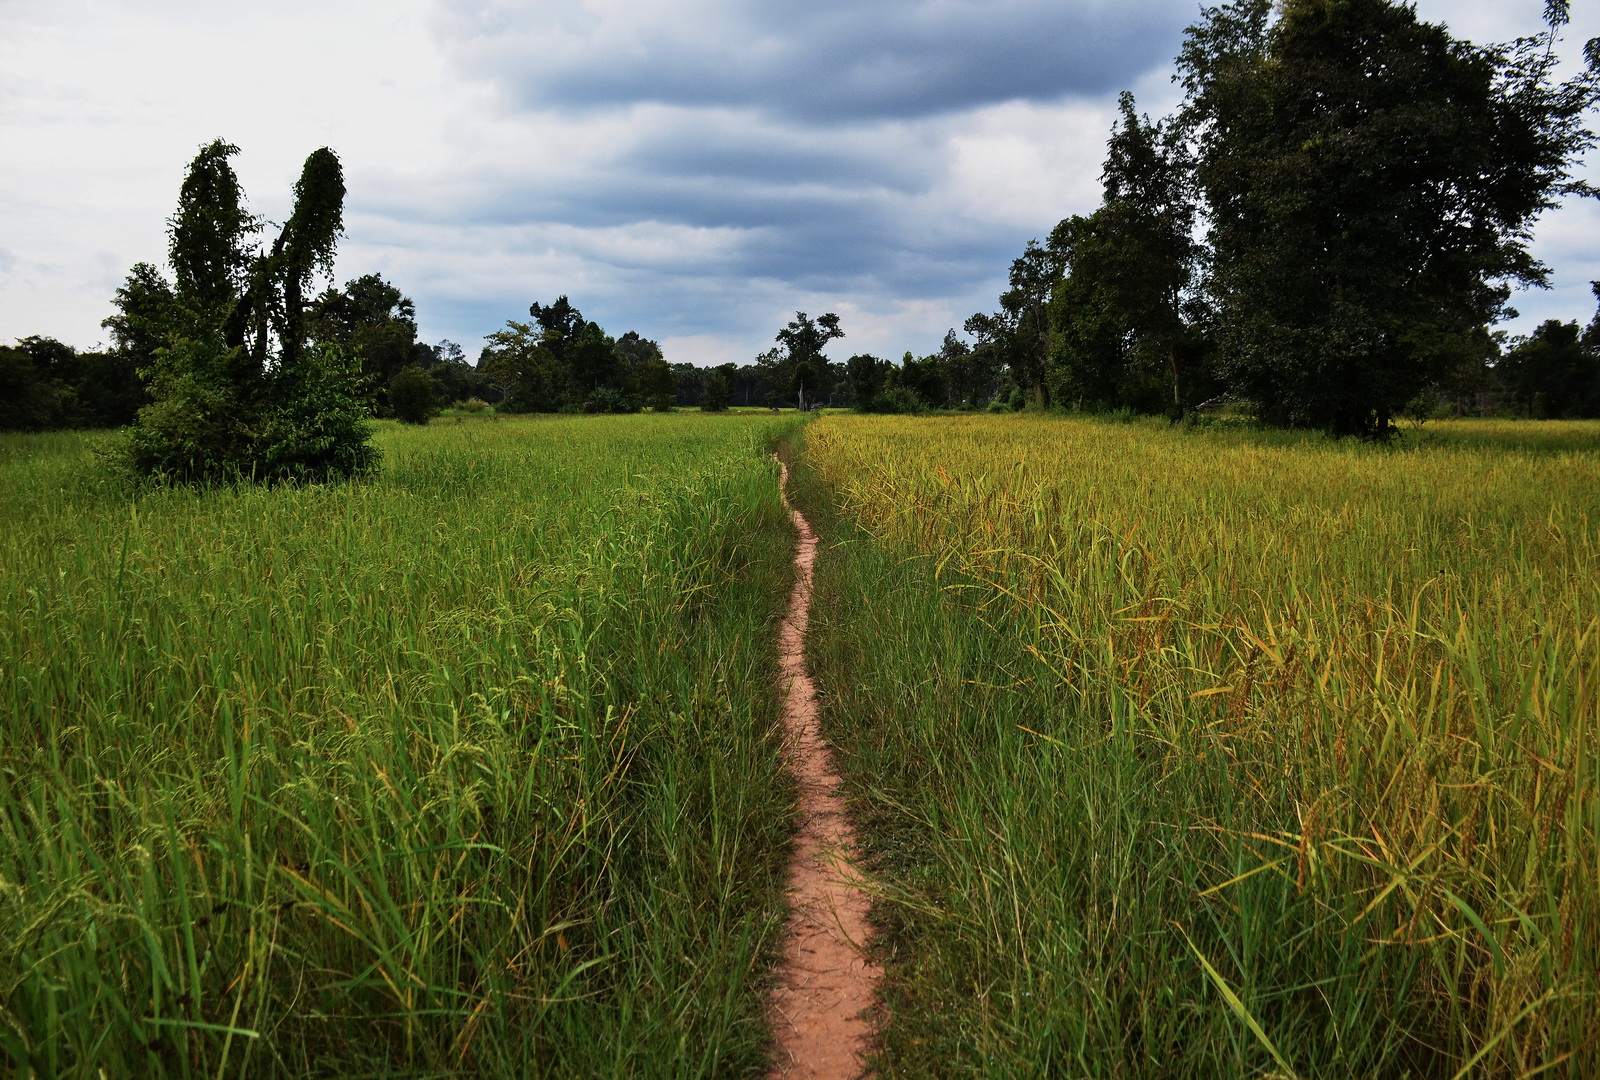 The picturesque trail heads east towards Banteay Ampil